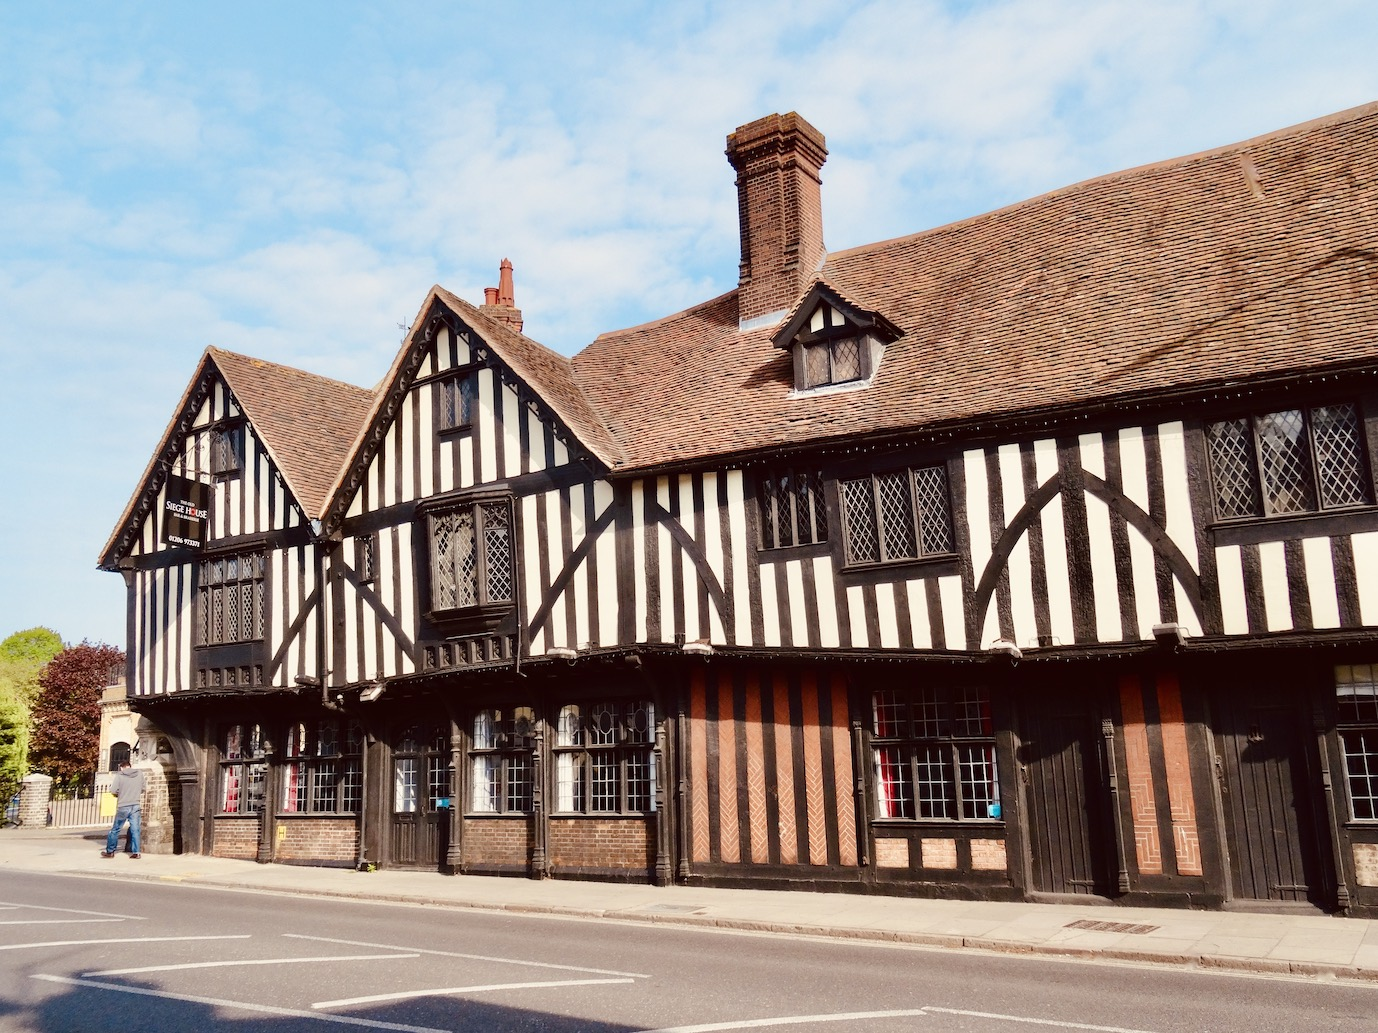 The Siege House Colchester.